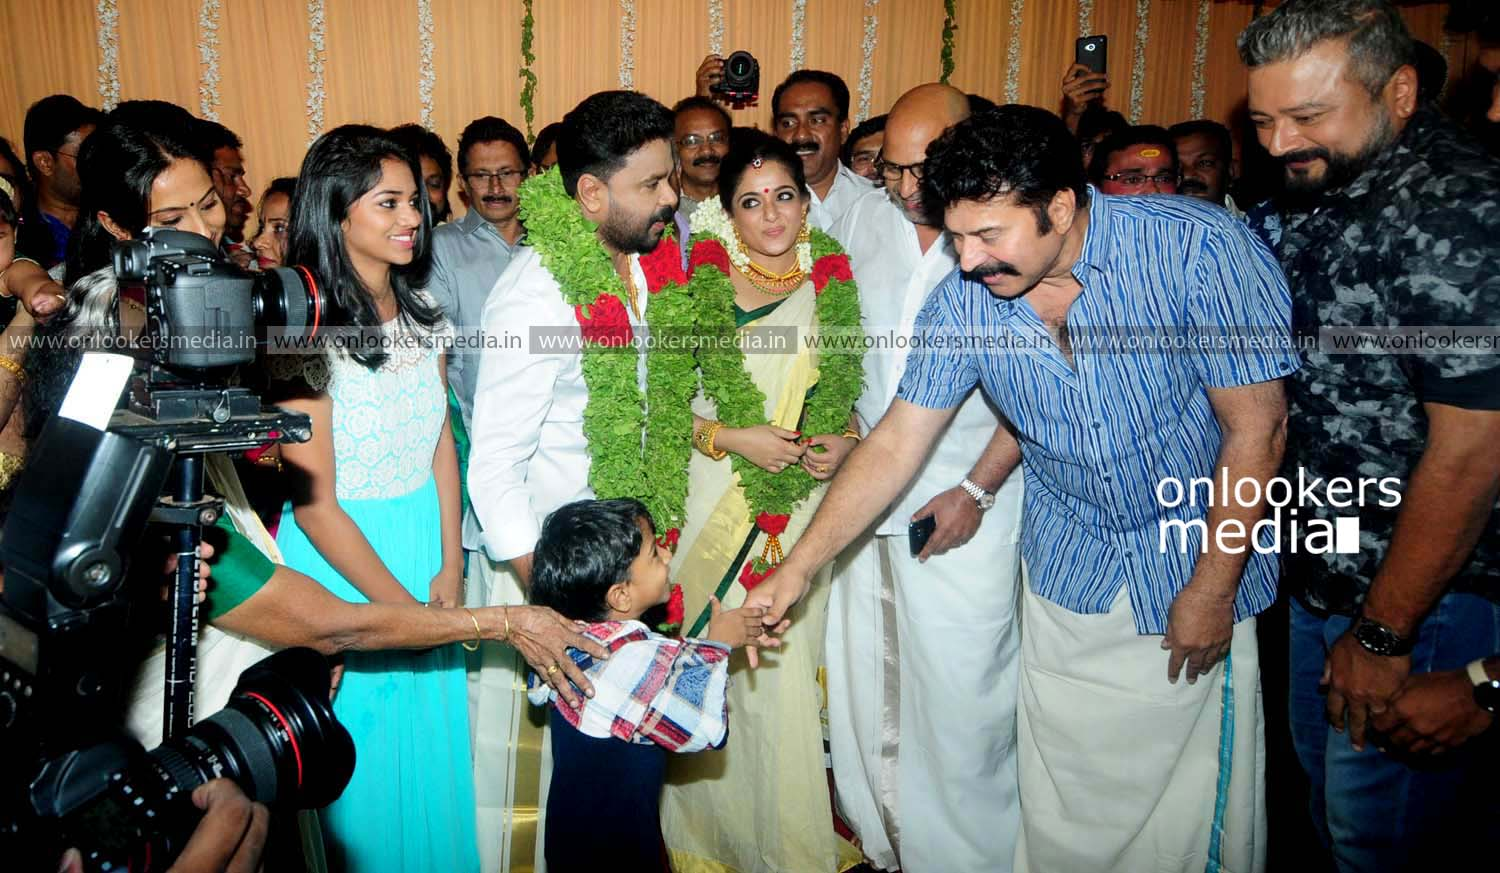 http://onlookersmedia.in/wp-content/uploads/2016/11/Dileep-Kavya-Madhavan-Wedding-Stills-Photos-33.jpg